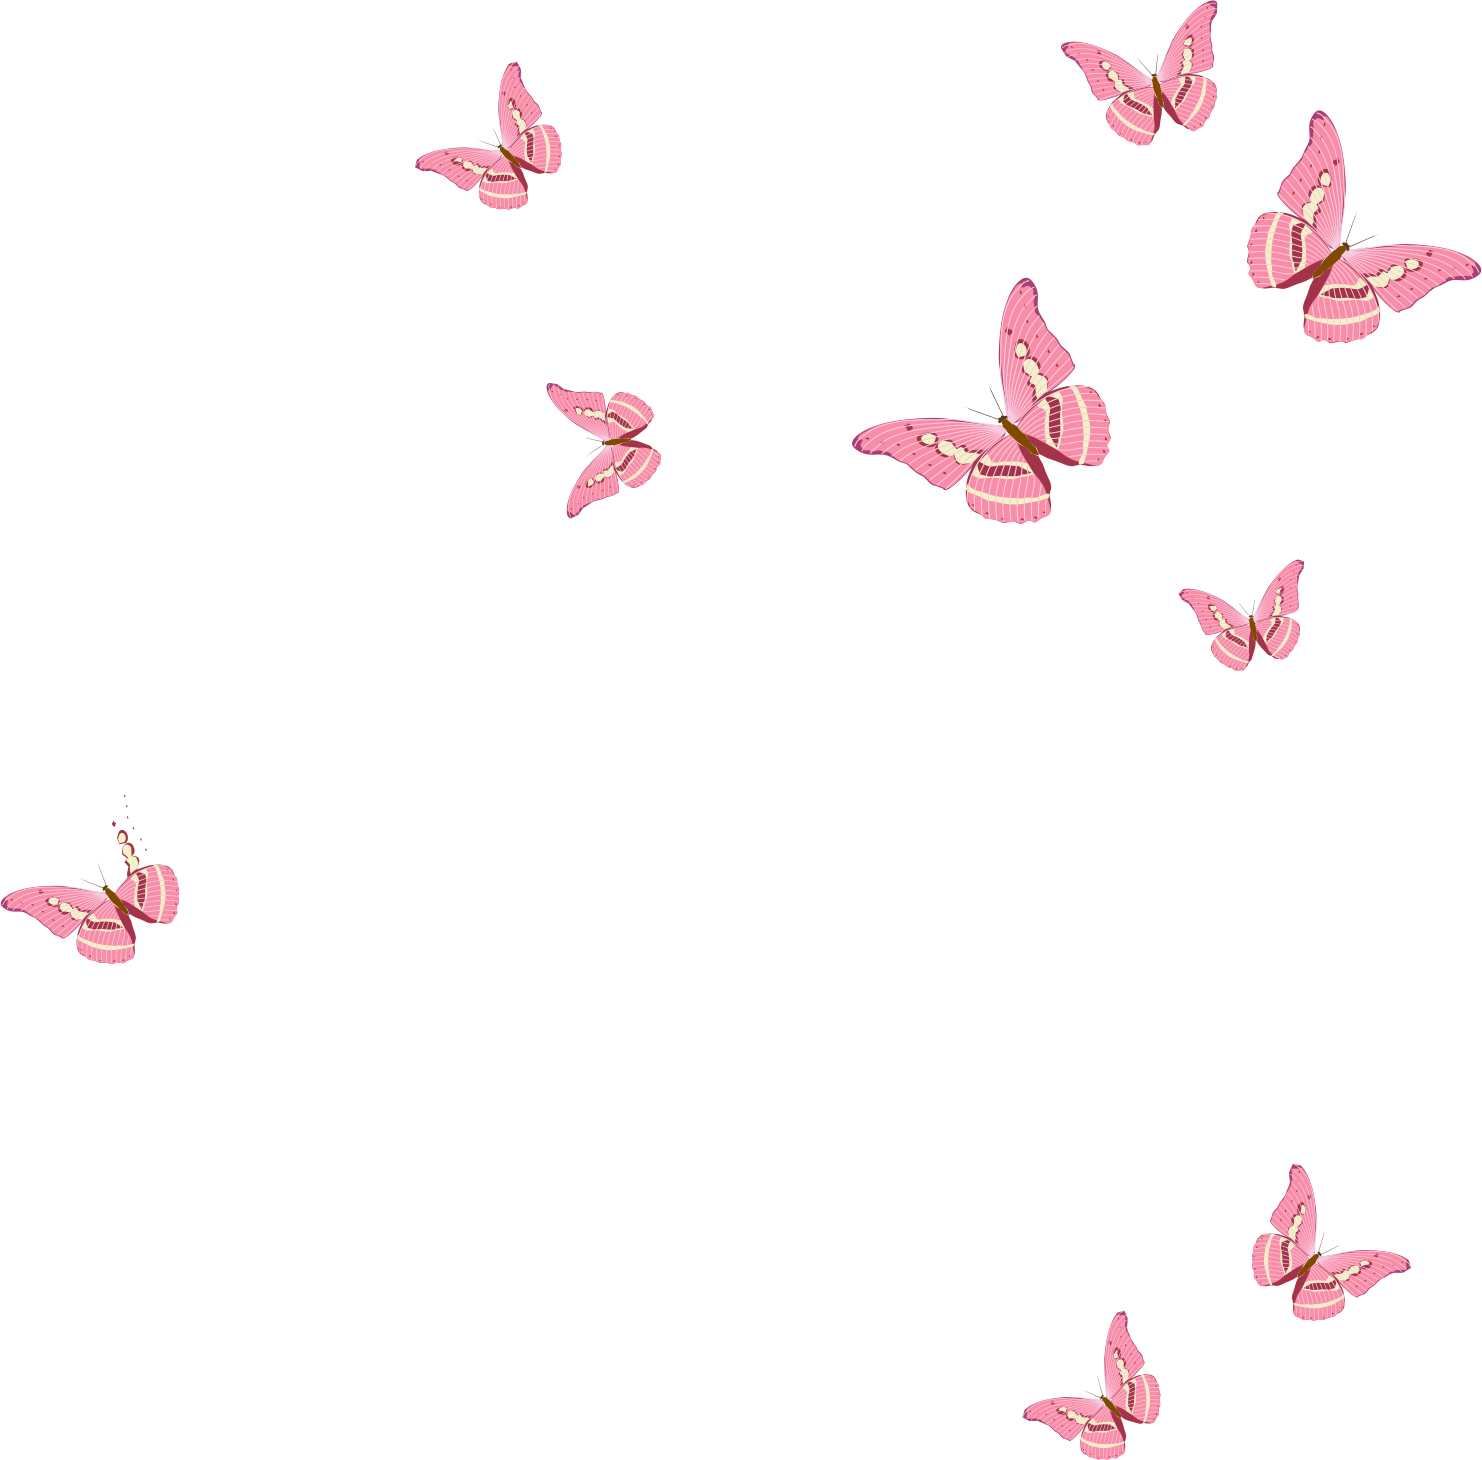 Pin By 2 The Moon And Back On Picsart Stickers Pink Wallpaper Backgrounds Pink Butterfly Aesthetic Iphone Wallpaper